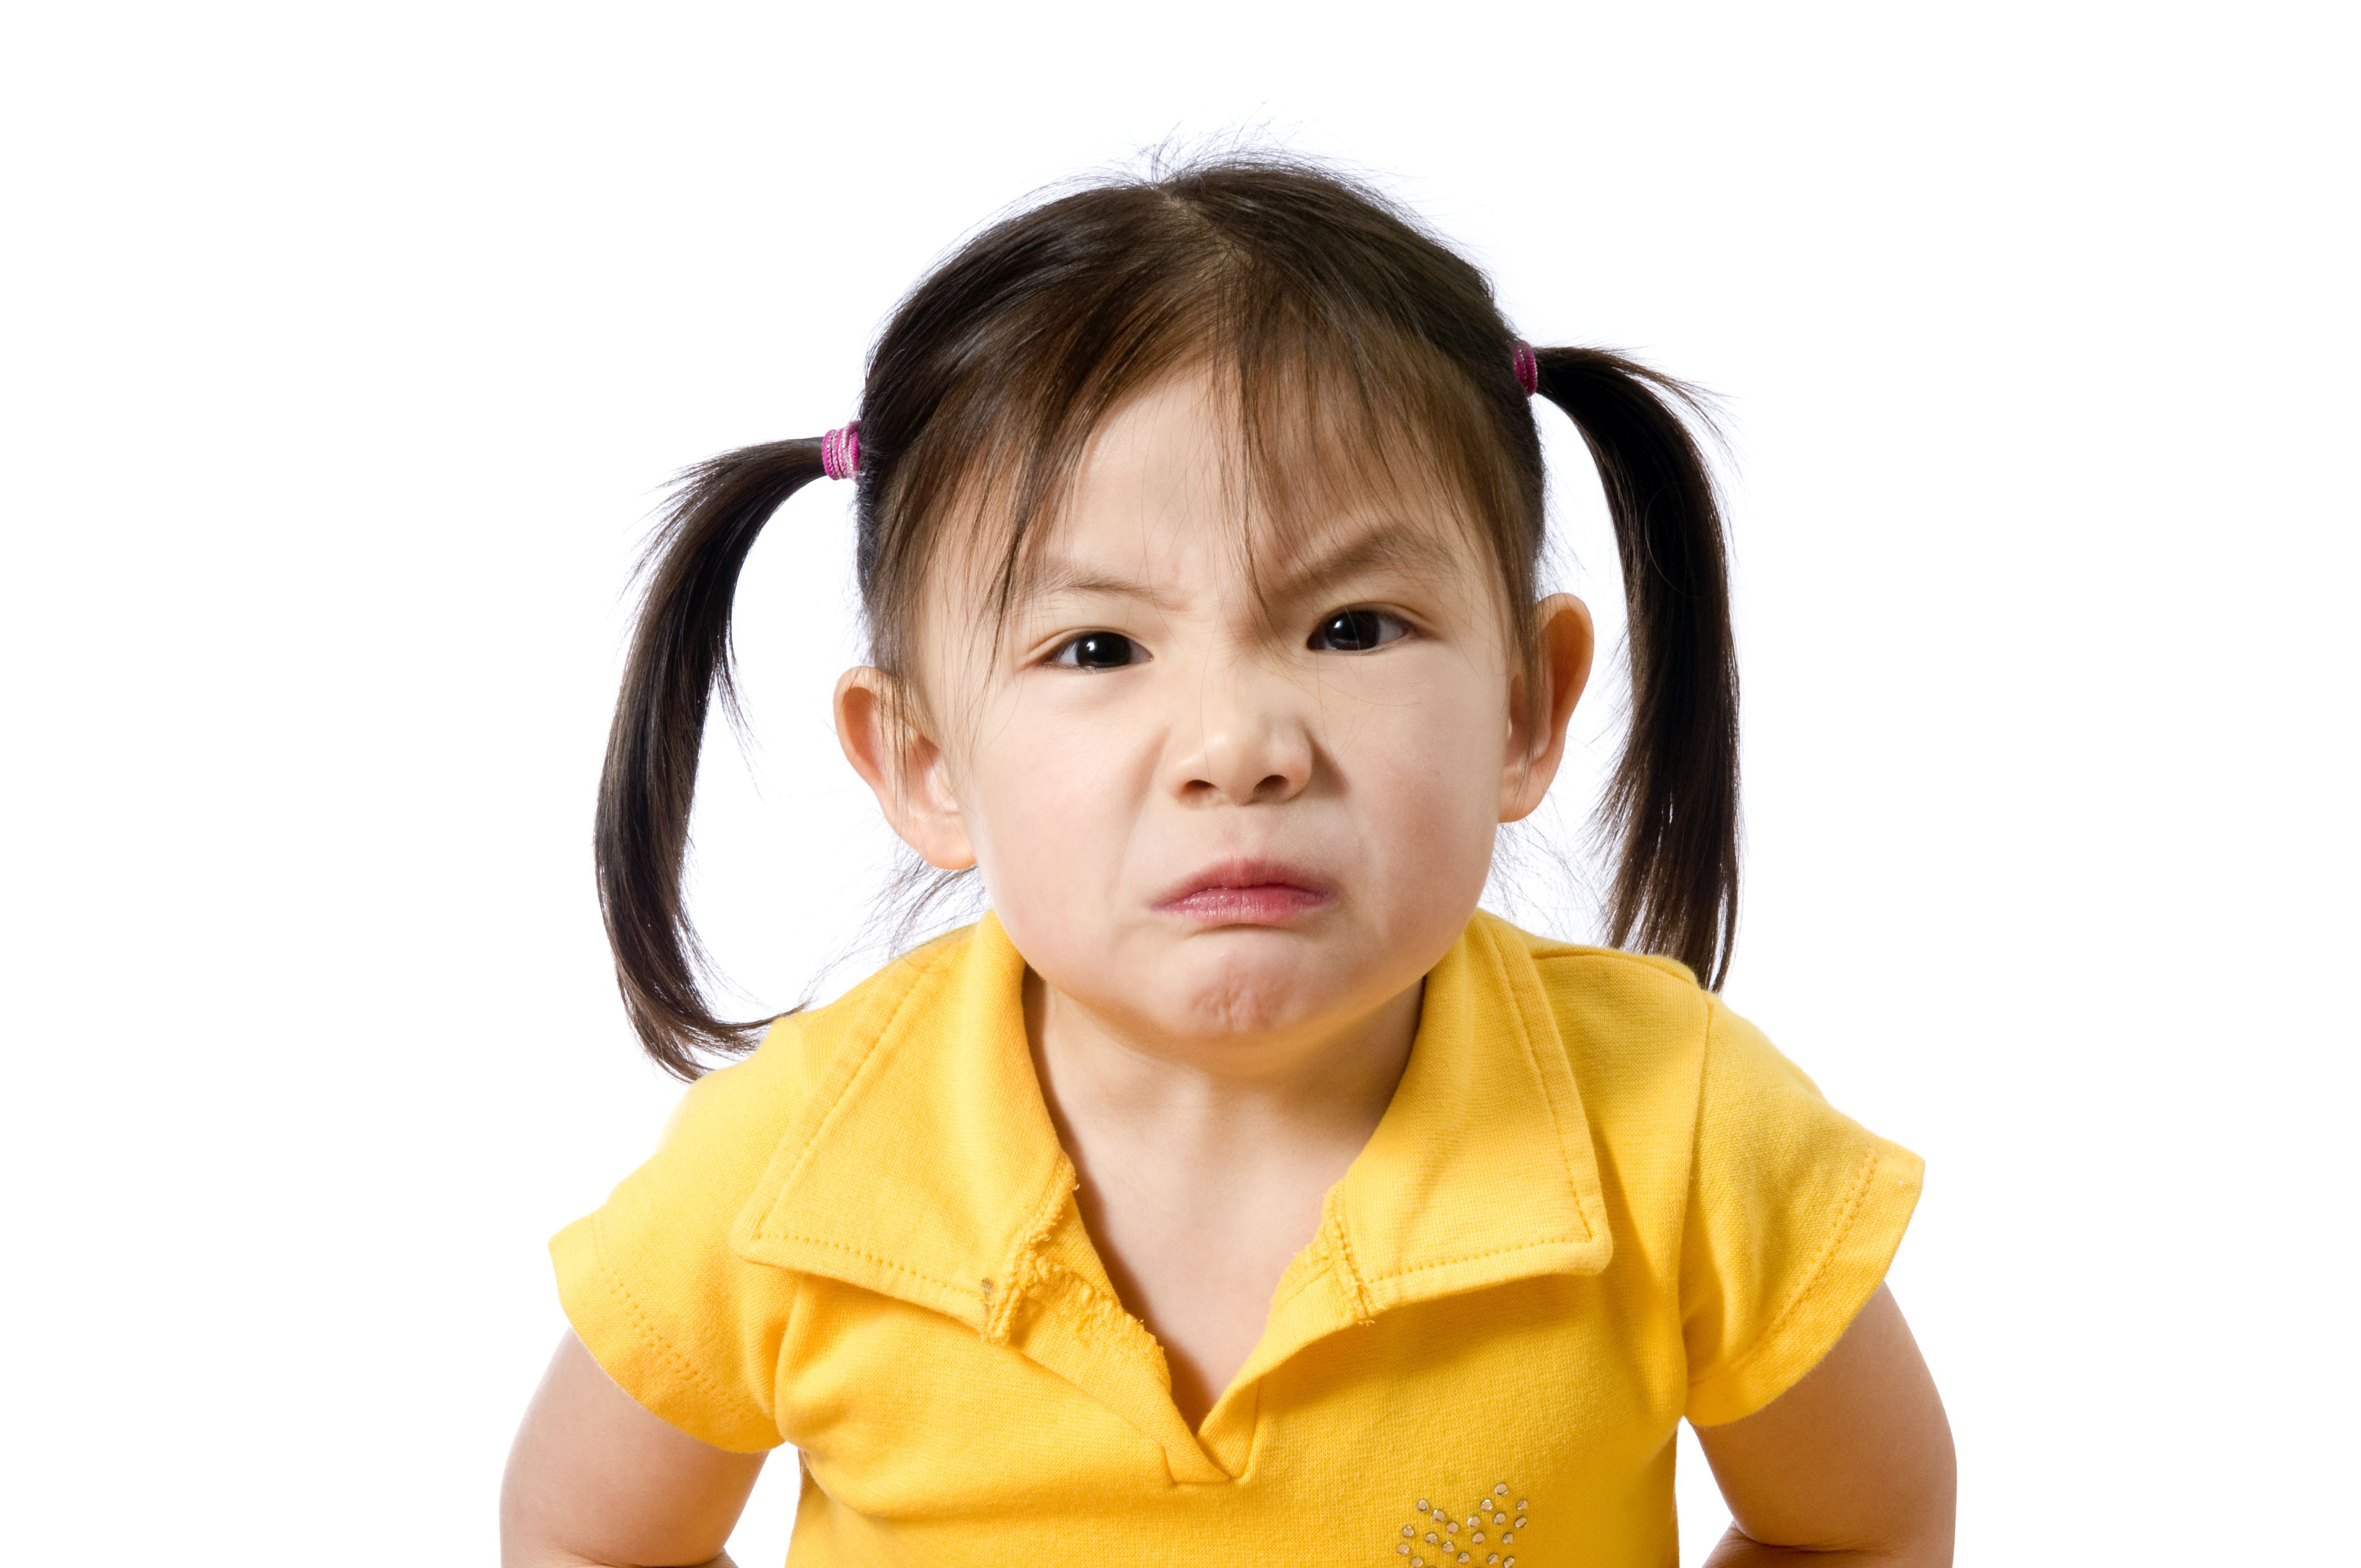 angry kid student - photo #25